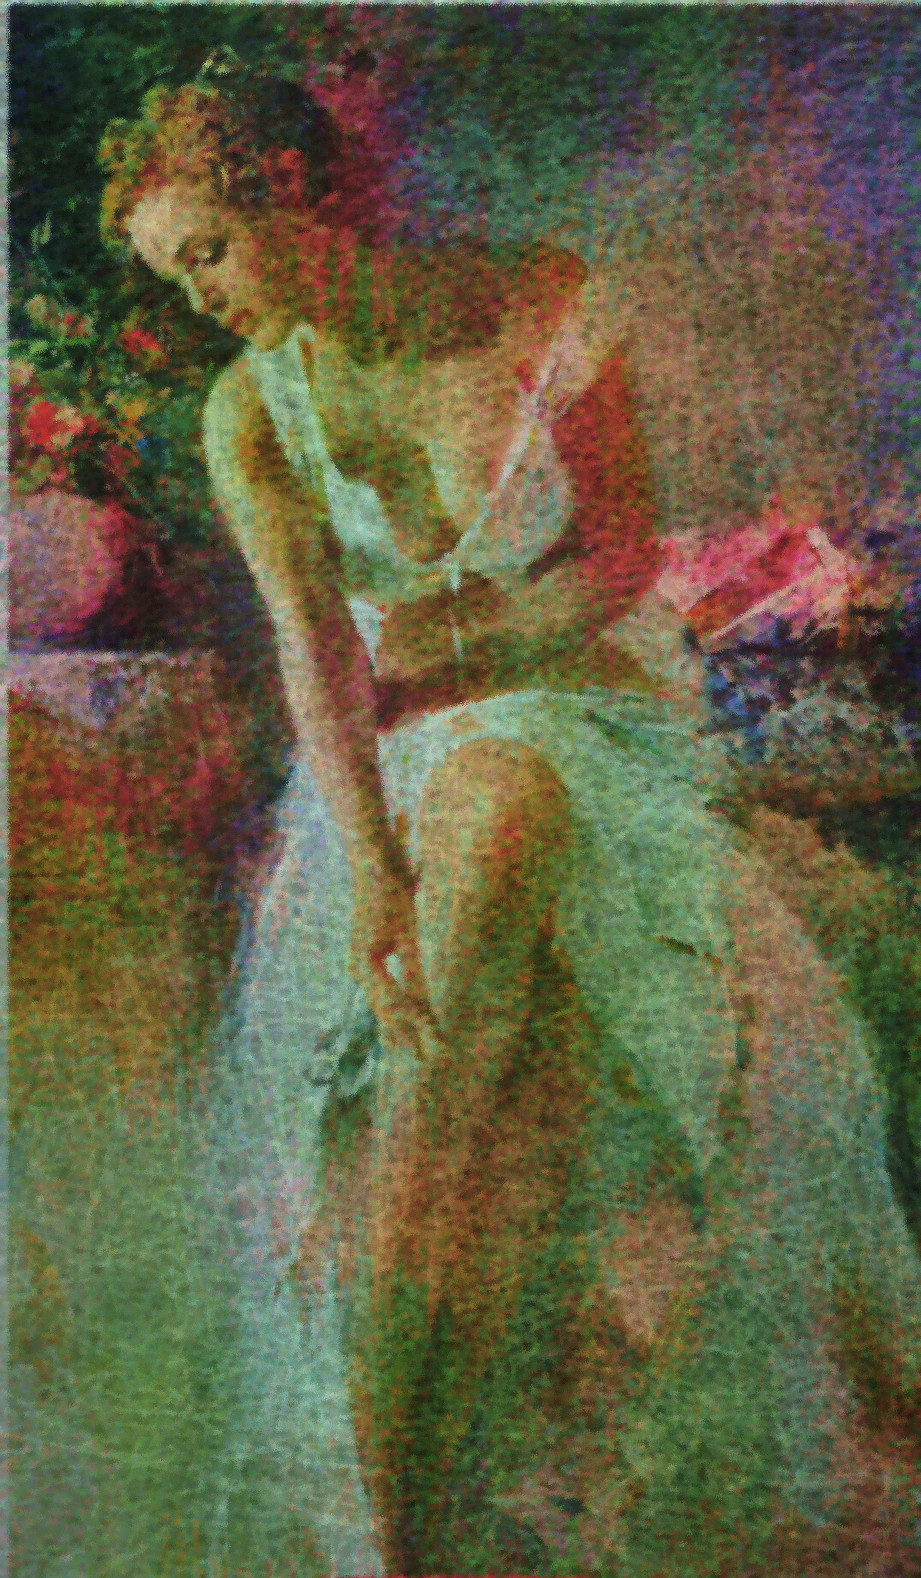 4300-art-puzzle-panorama-angelica_DN_Pointillism_DN-paint-04.jpg